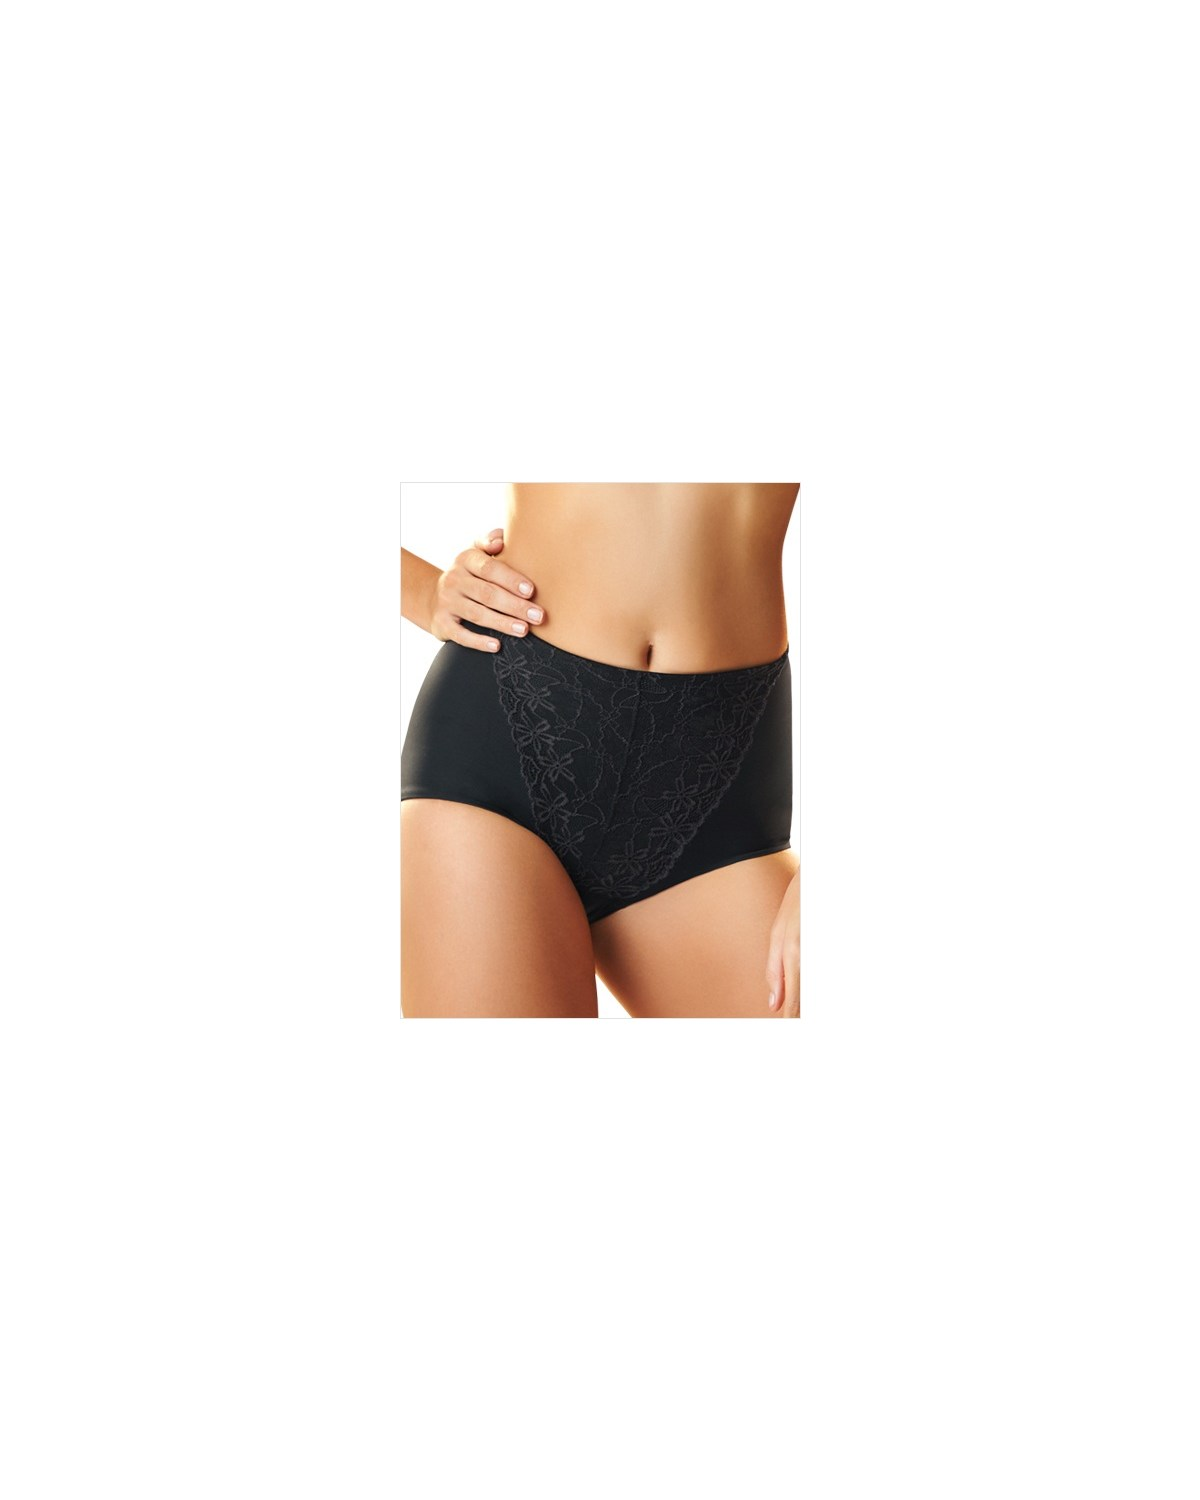 fabulous lace minimizer panty--MainImage